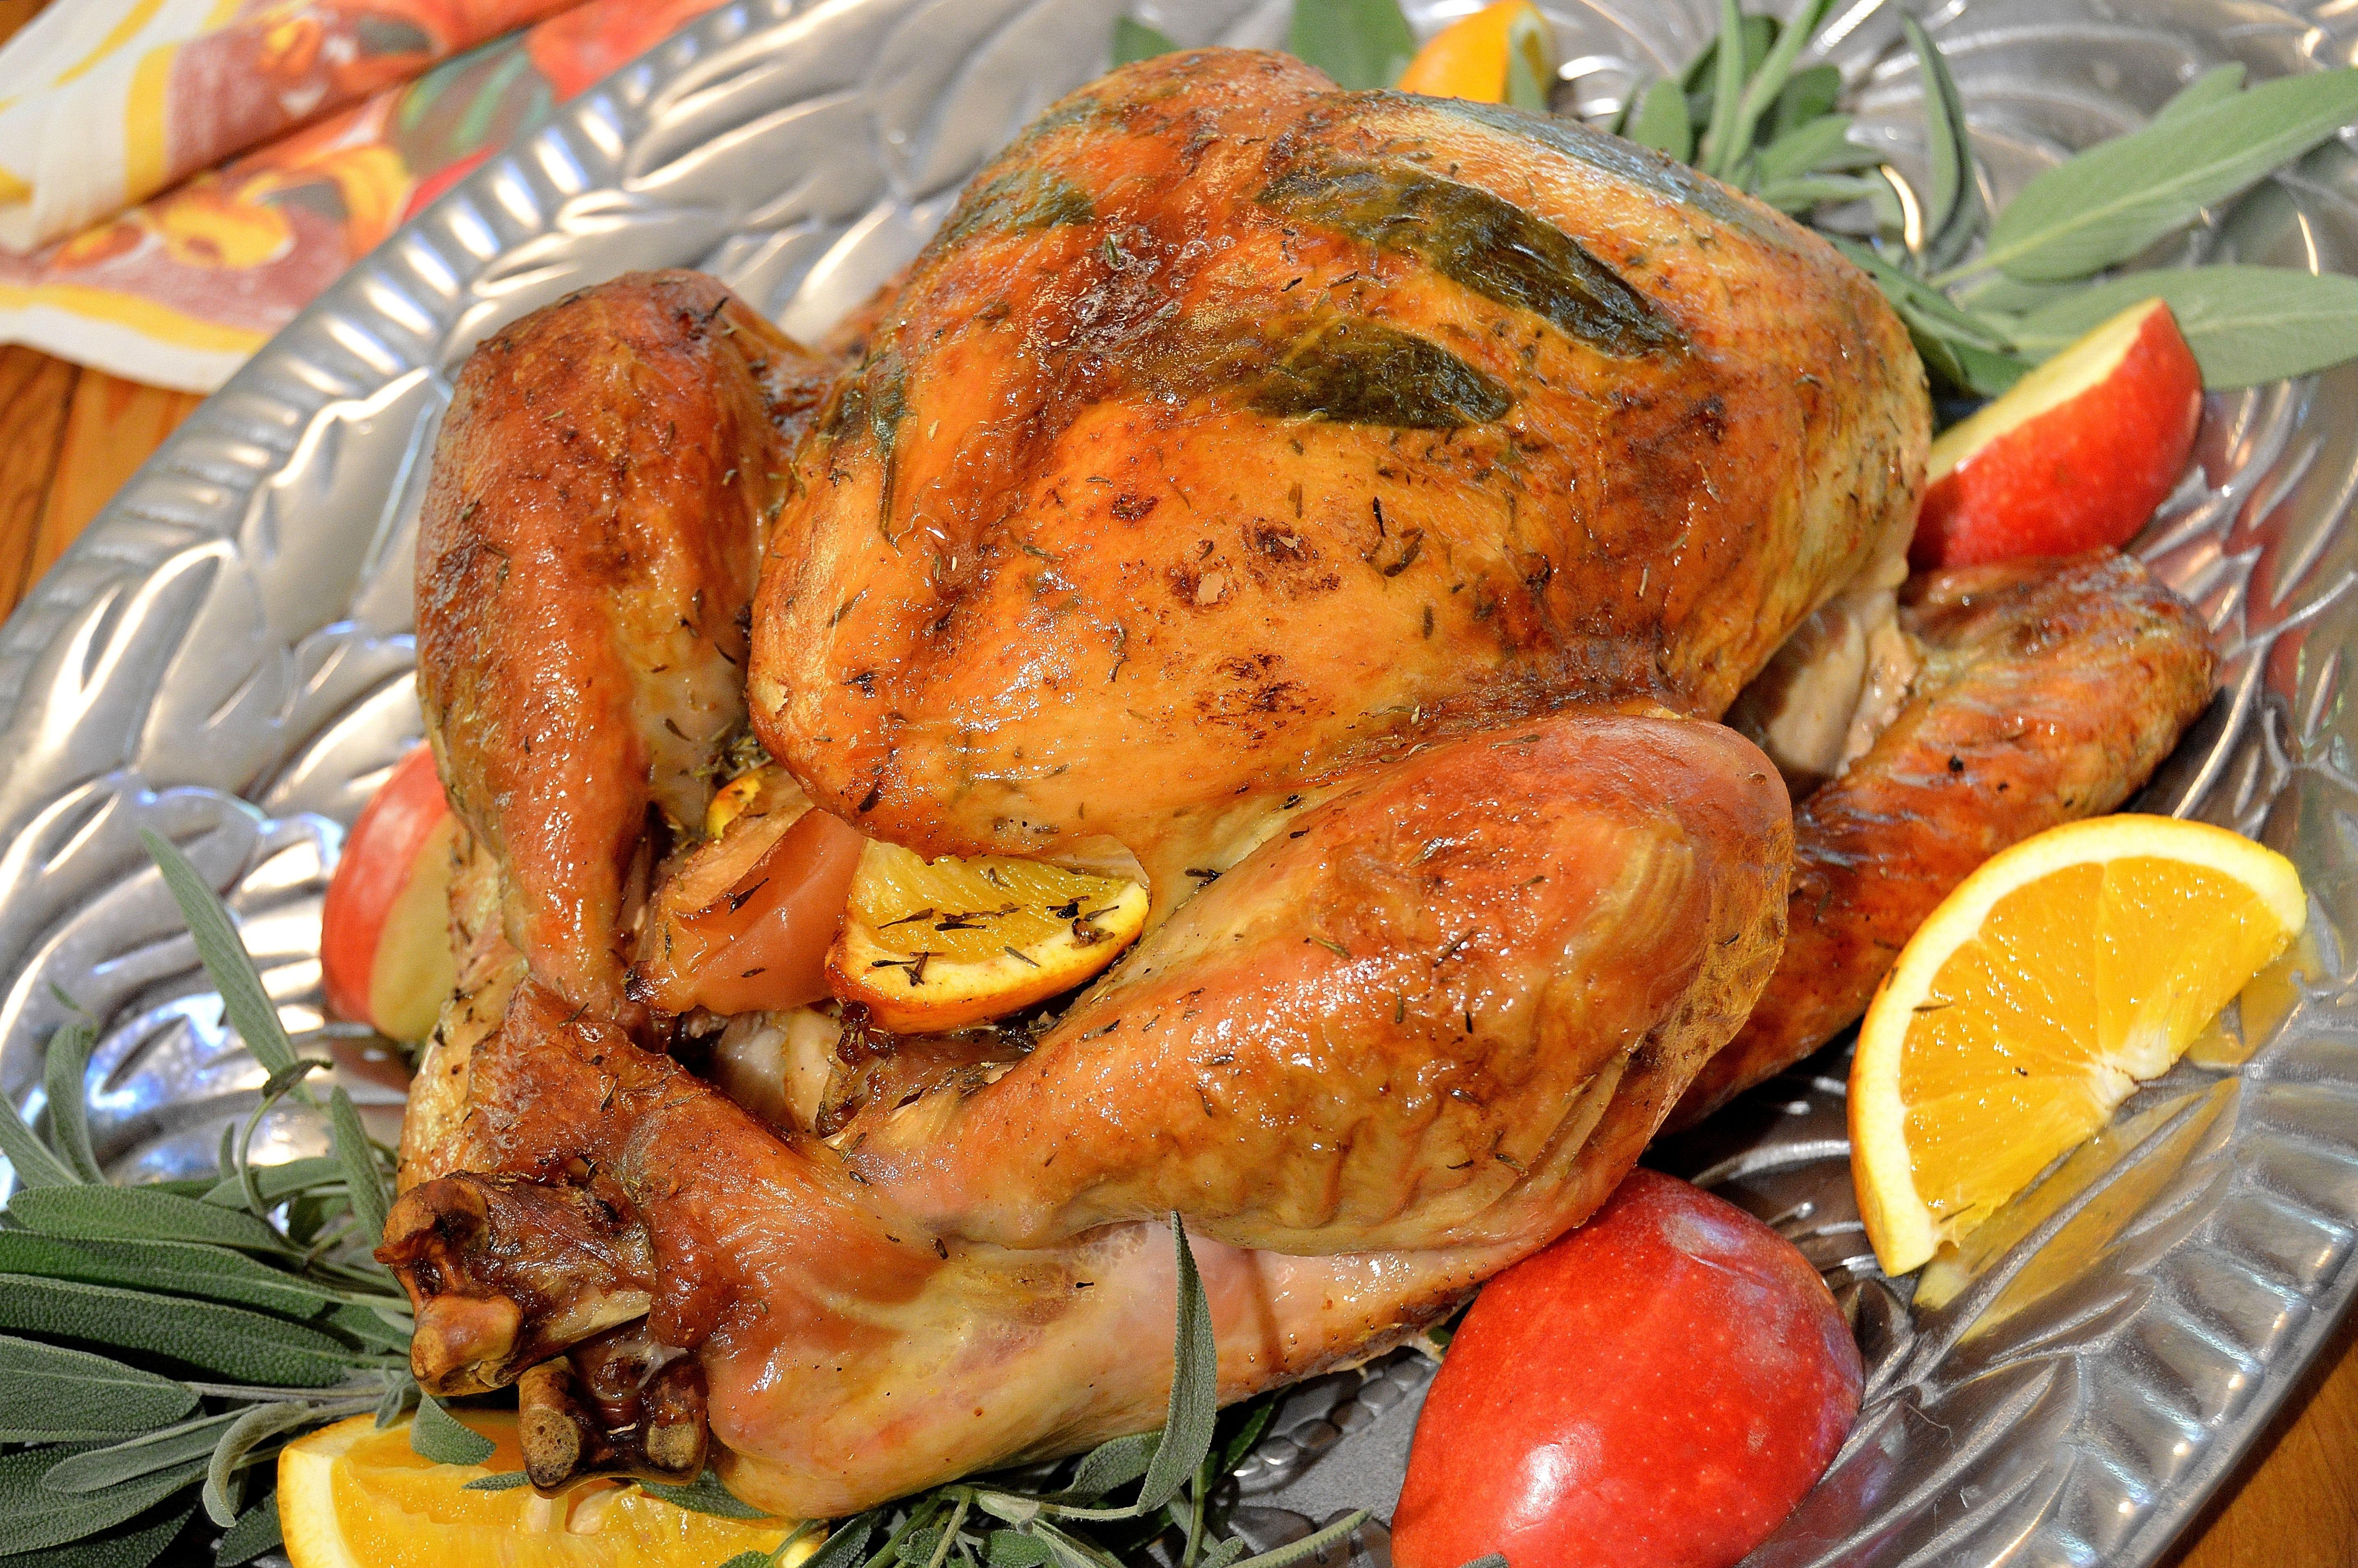 Your first Thanksgiving is a big deal! Make it great